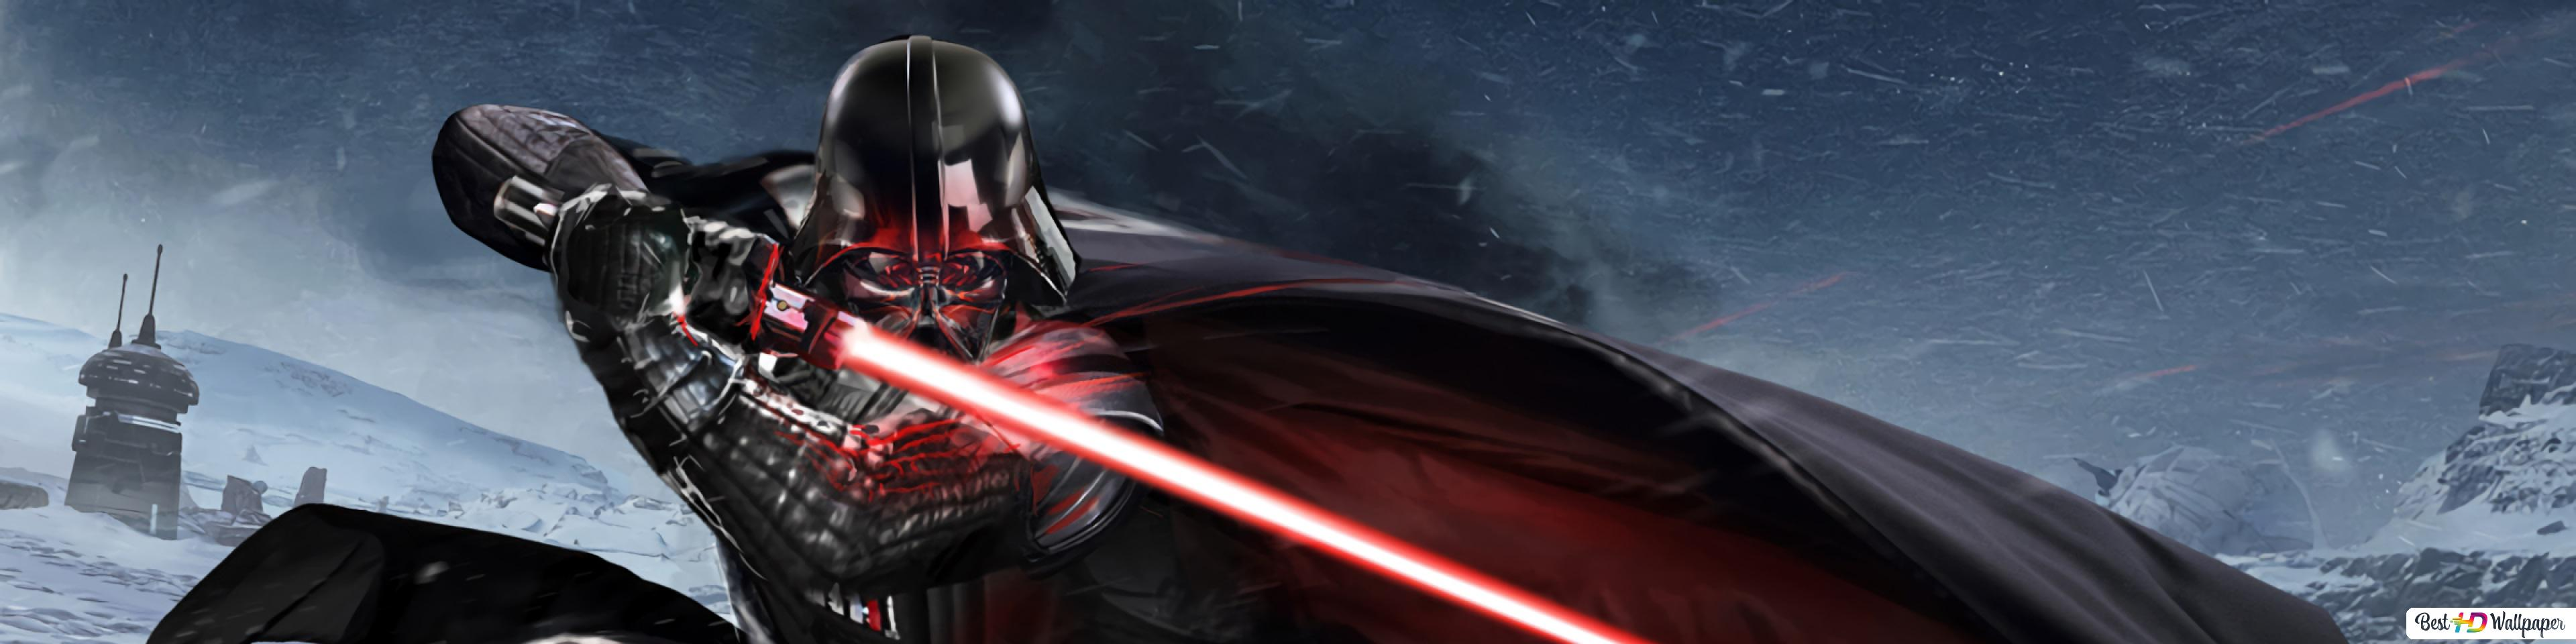 Star Wars Movie Shadow Stormtrooper Hd Wallpaper Download